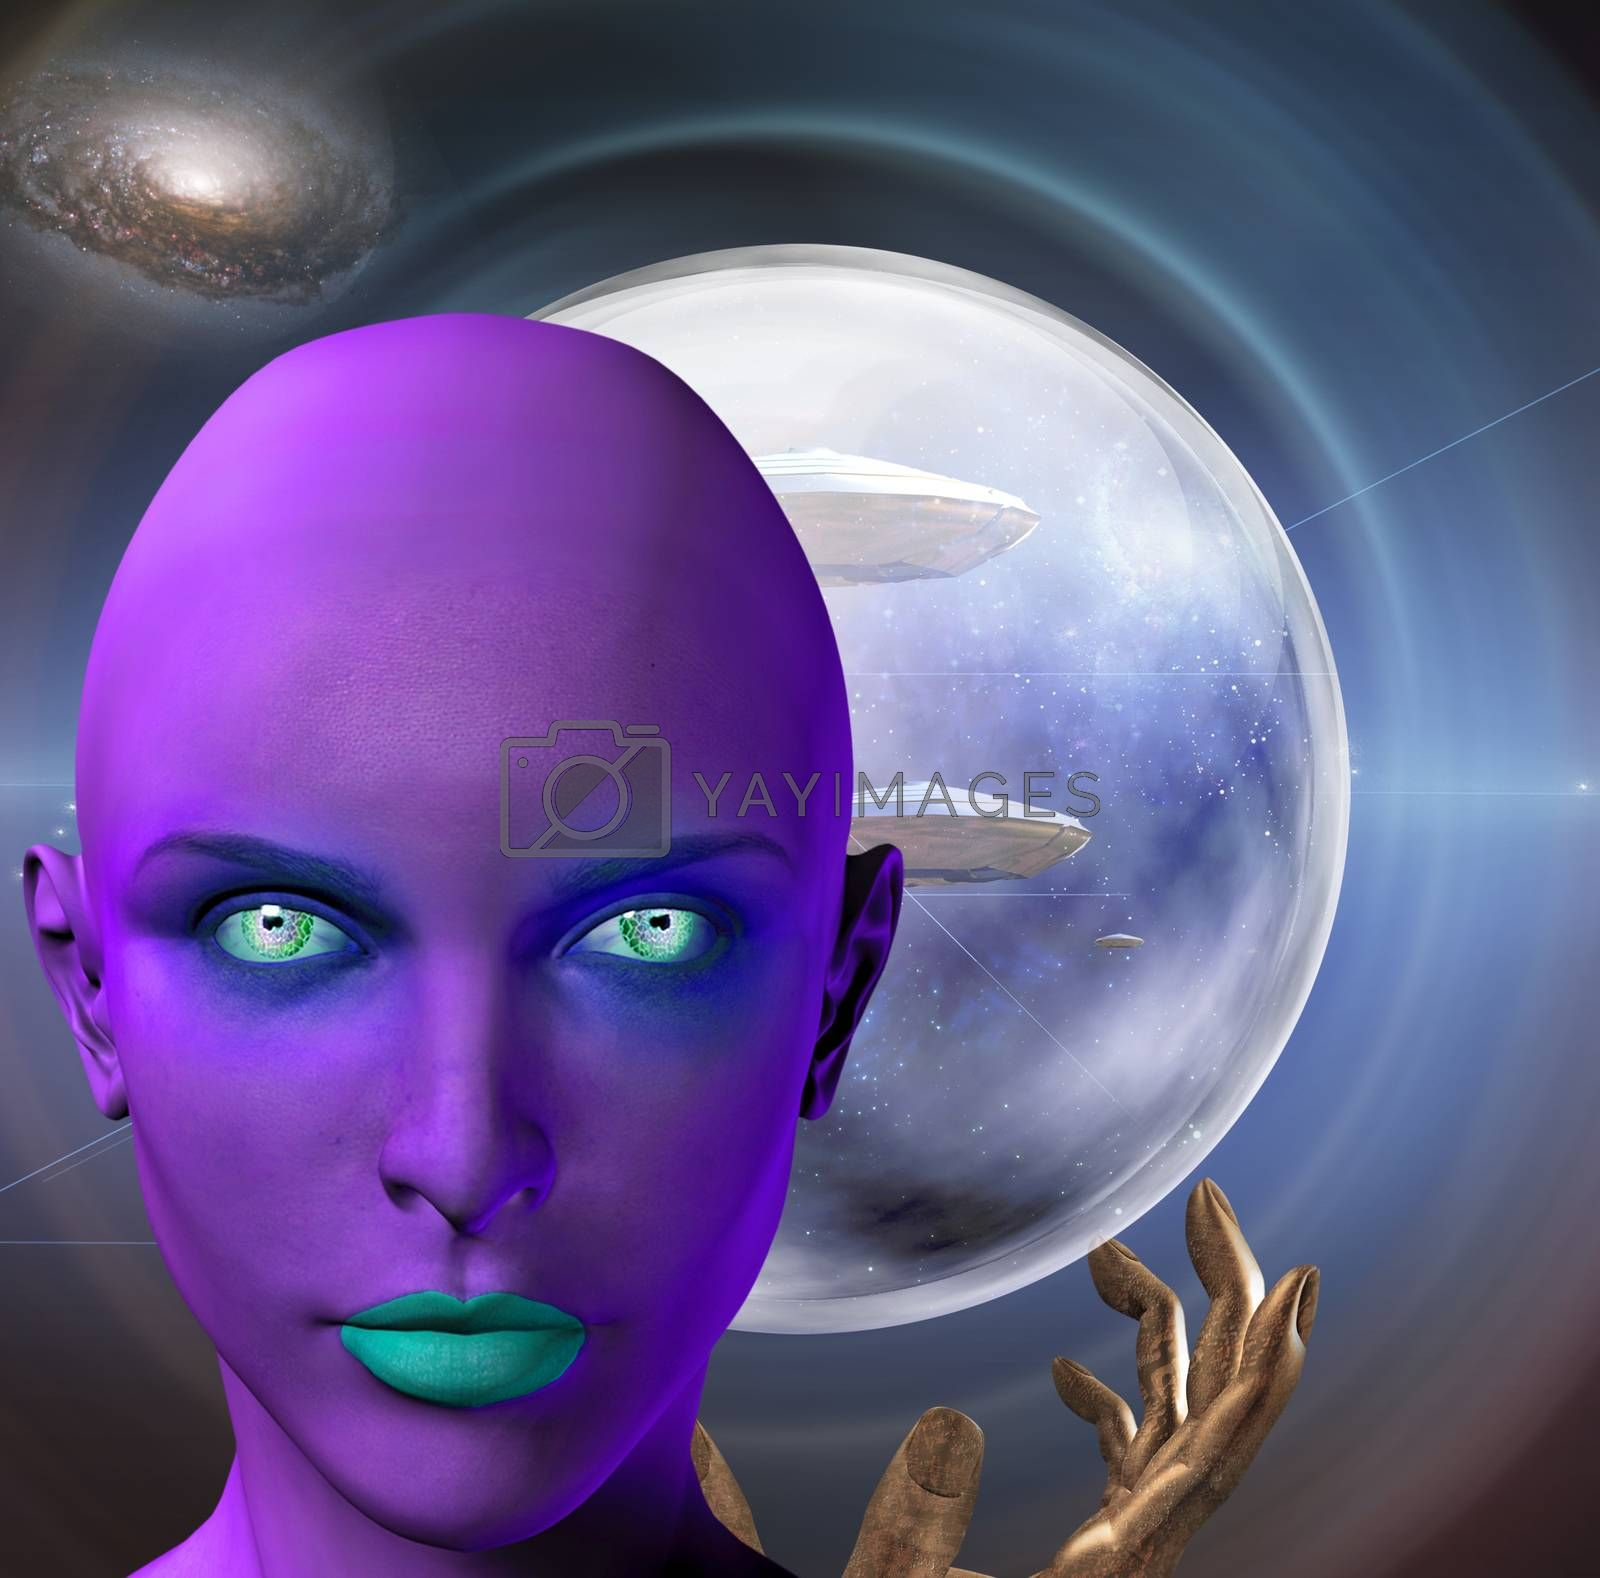 The face of female alien and praying hands. Flying saucers in deep space on a background. 3D rendering